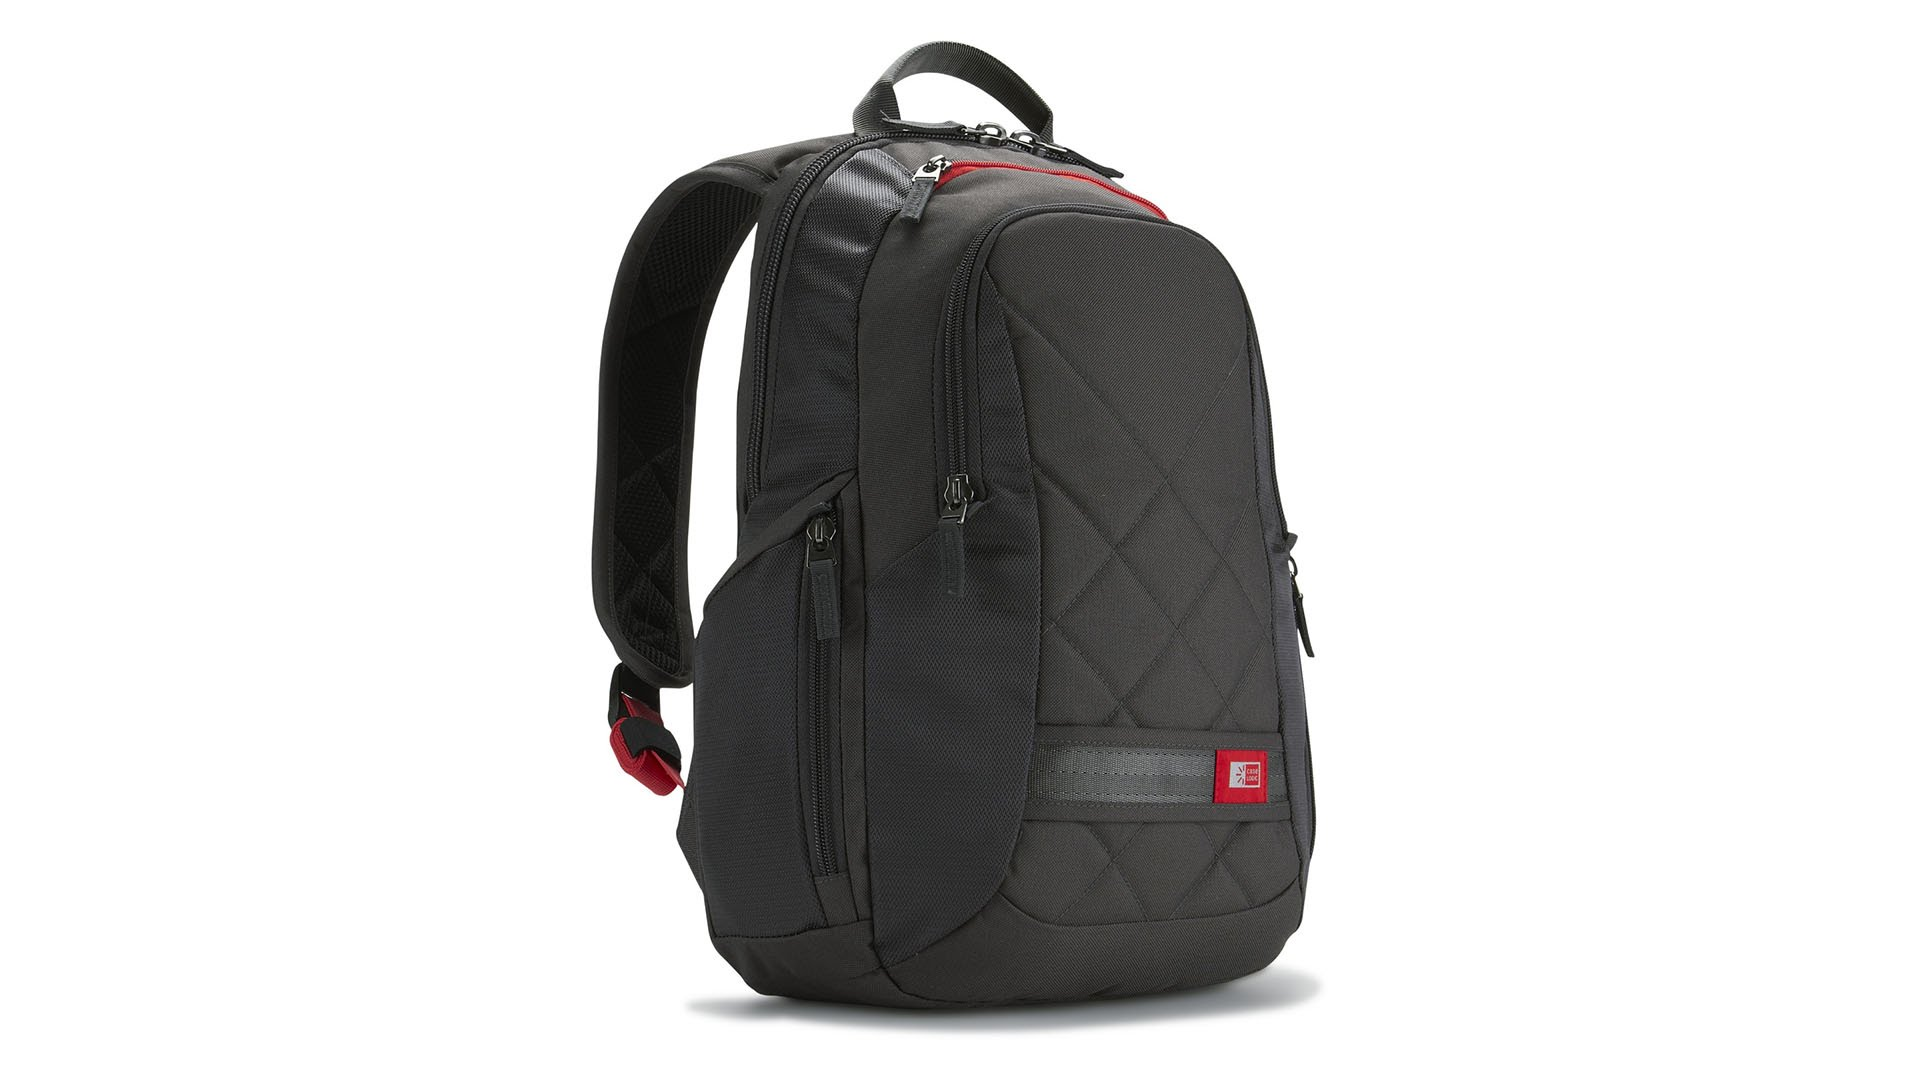 14 Laptop Backpack ViEbV2du